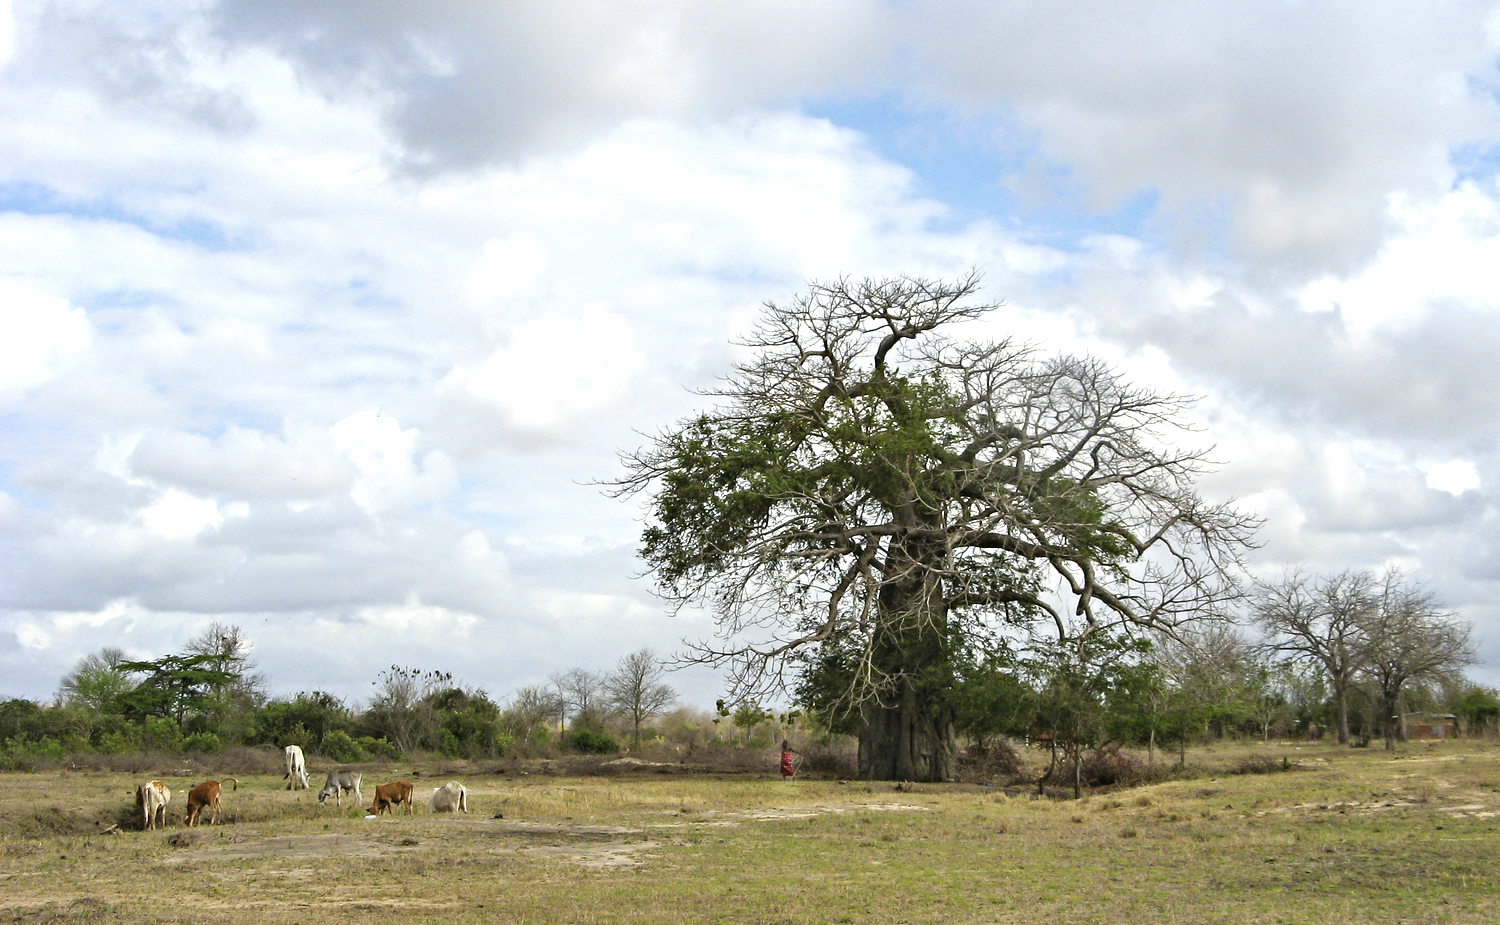 From a young age, children can instinctively look after cattle. You may just see the young boy in red herding the cattle from under the baobab tree.